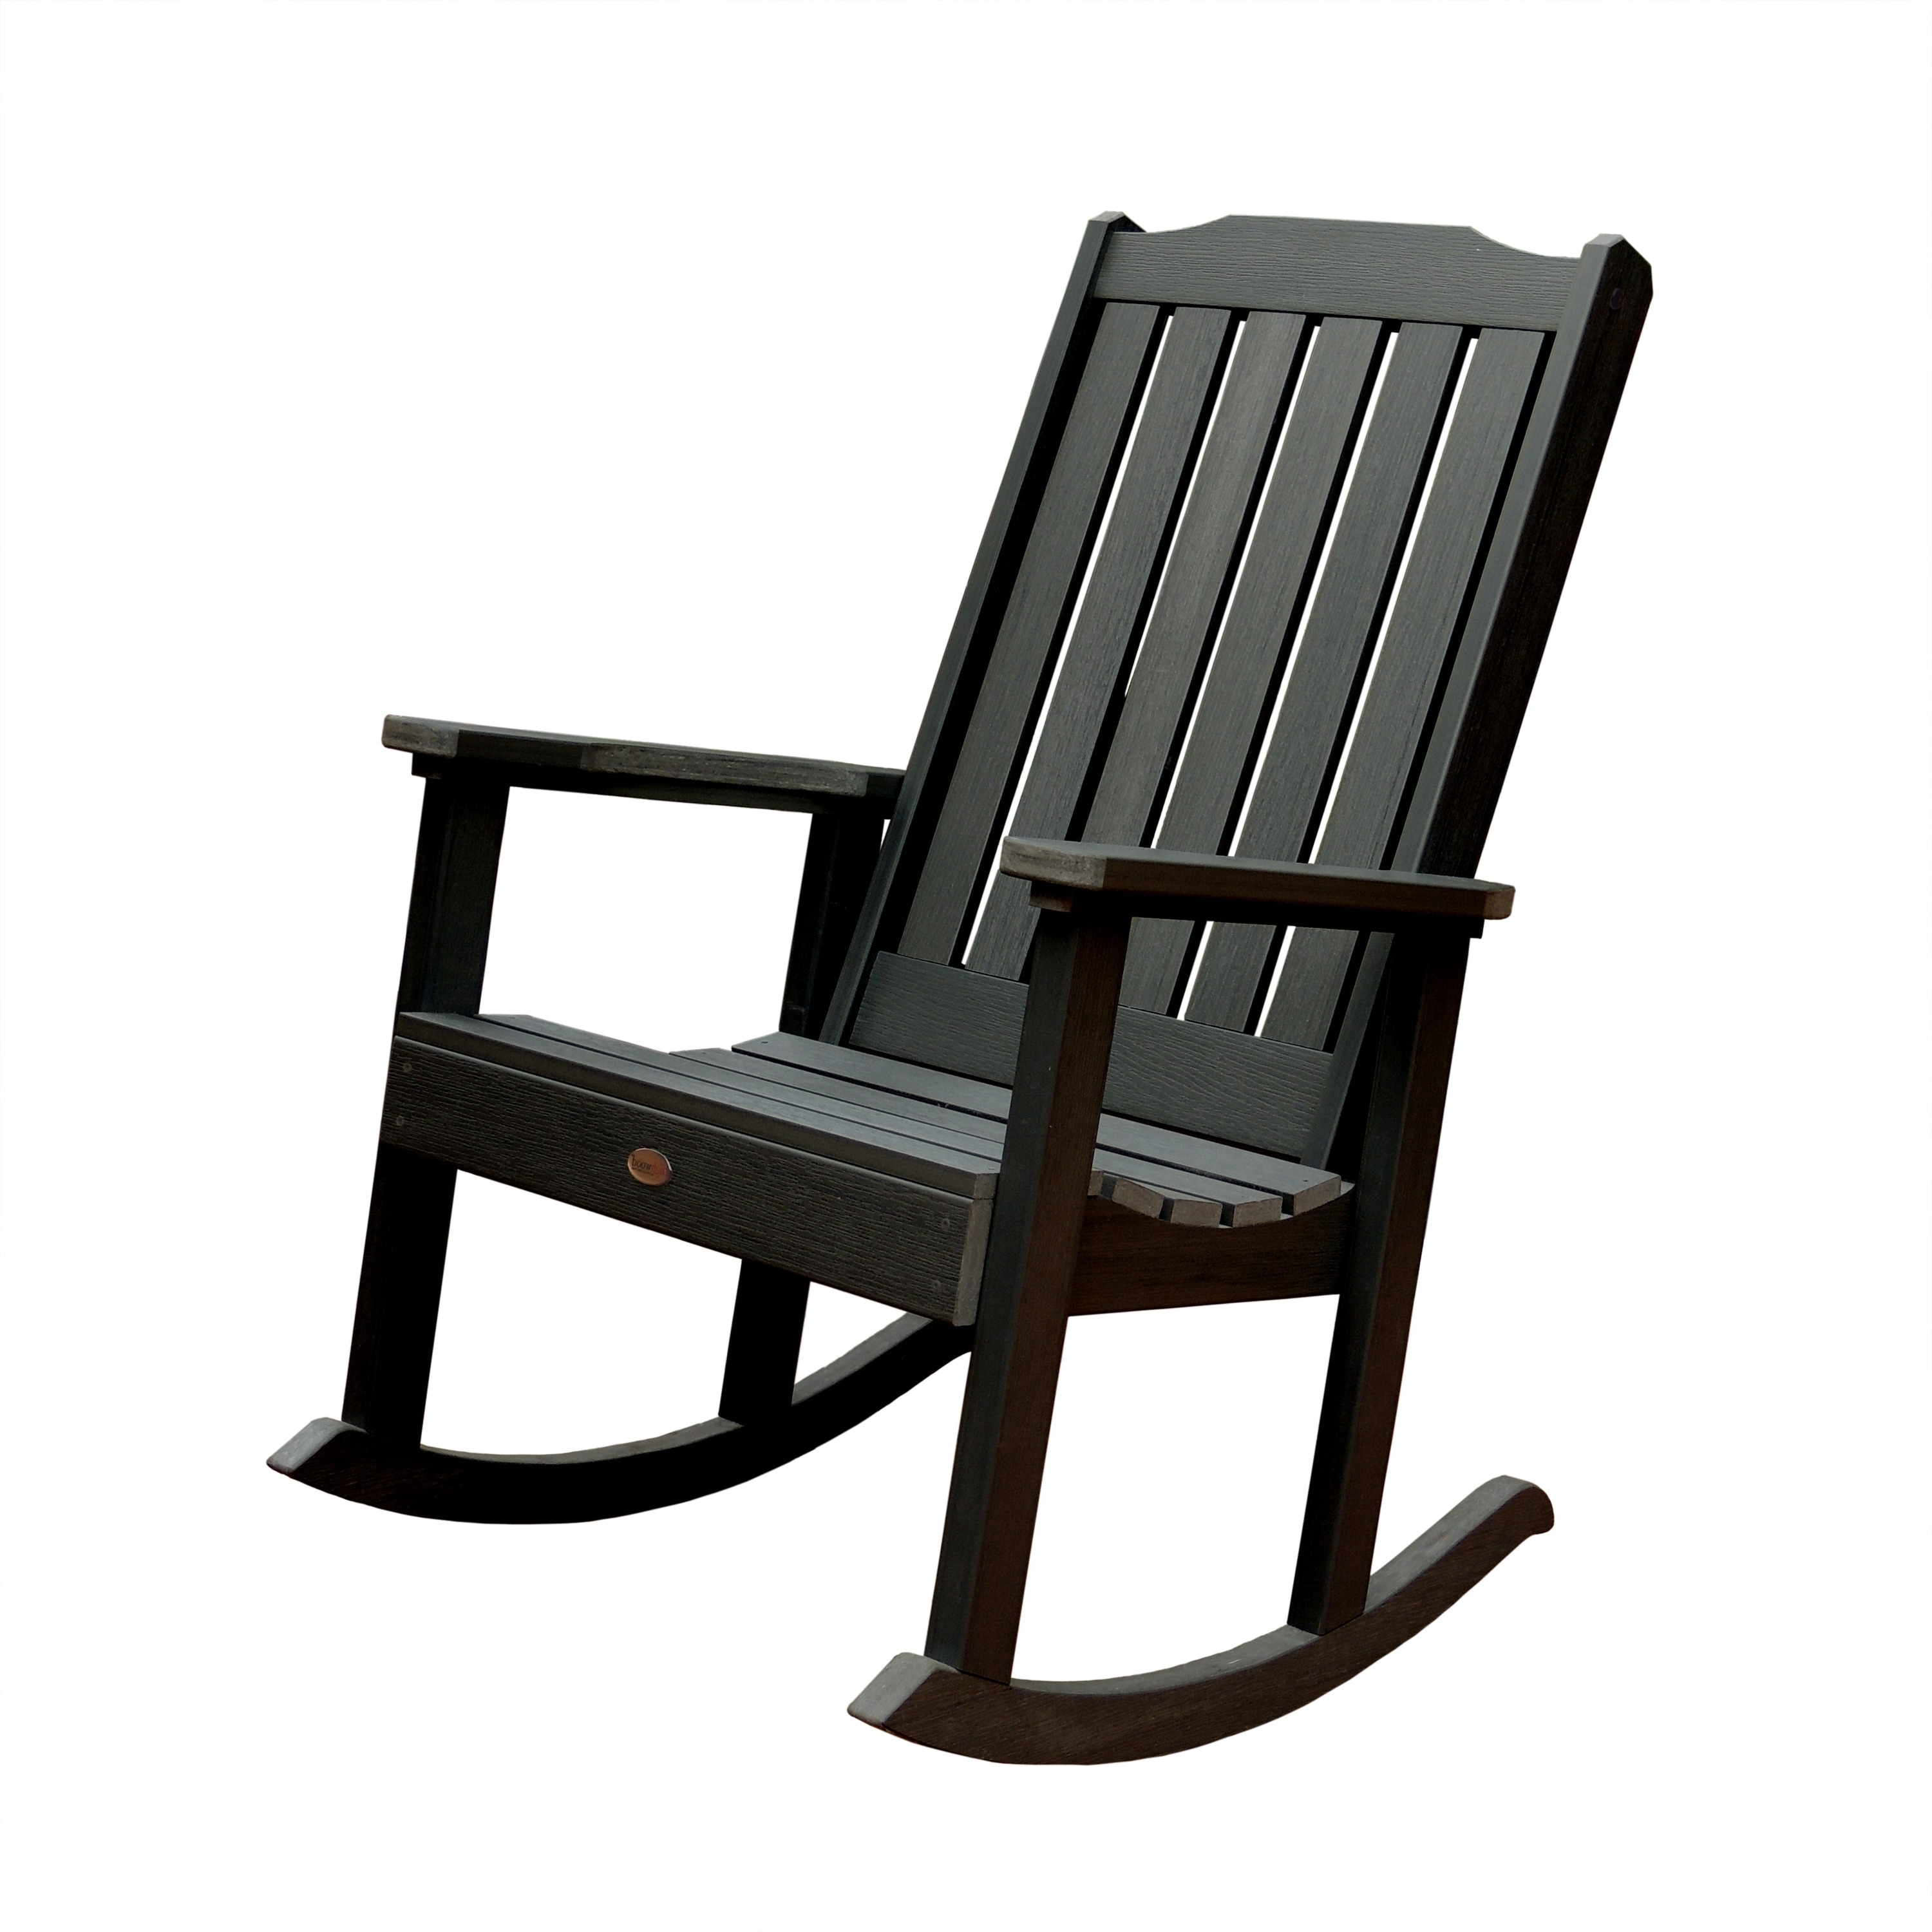 Oversized Patio Rocking Chairs Throughout Best And Newest Shop Highwood Eco Friendly Synthetic Wood Lehigh Rocking Chair (View 13 of 20)